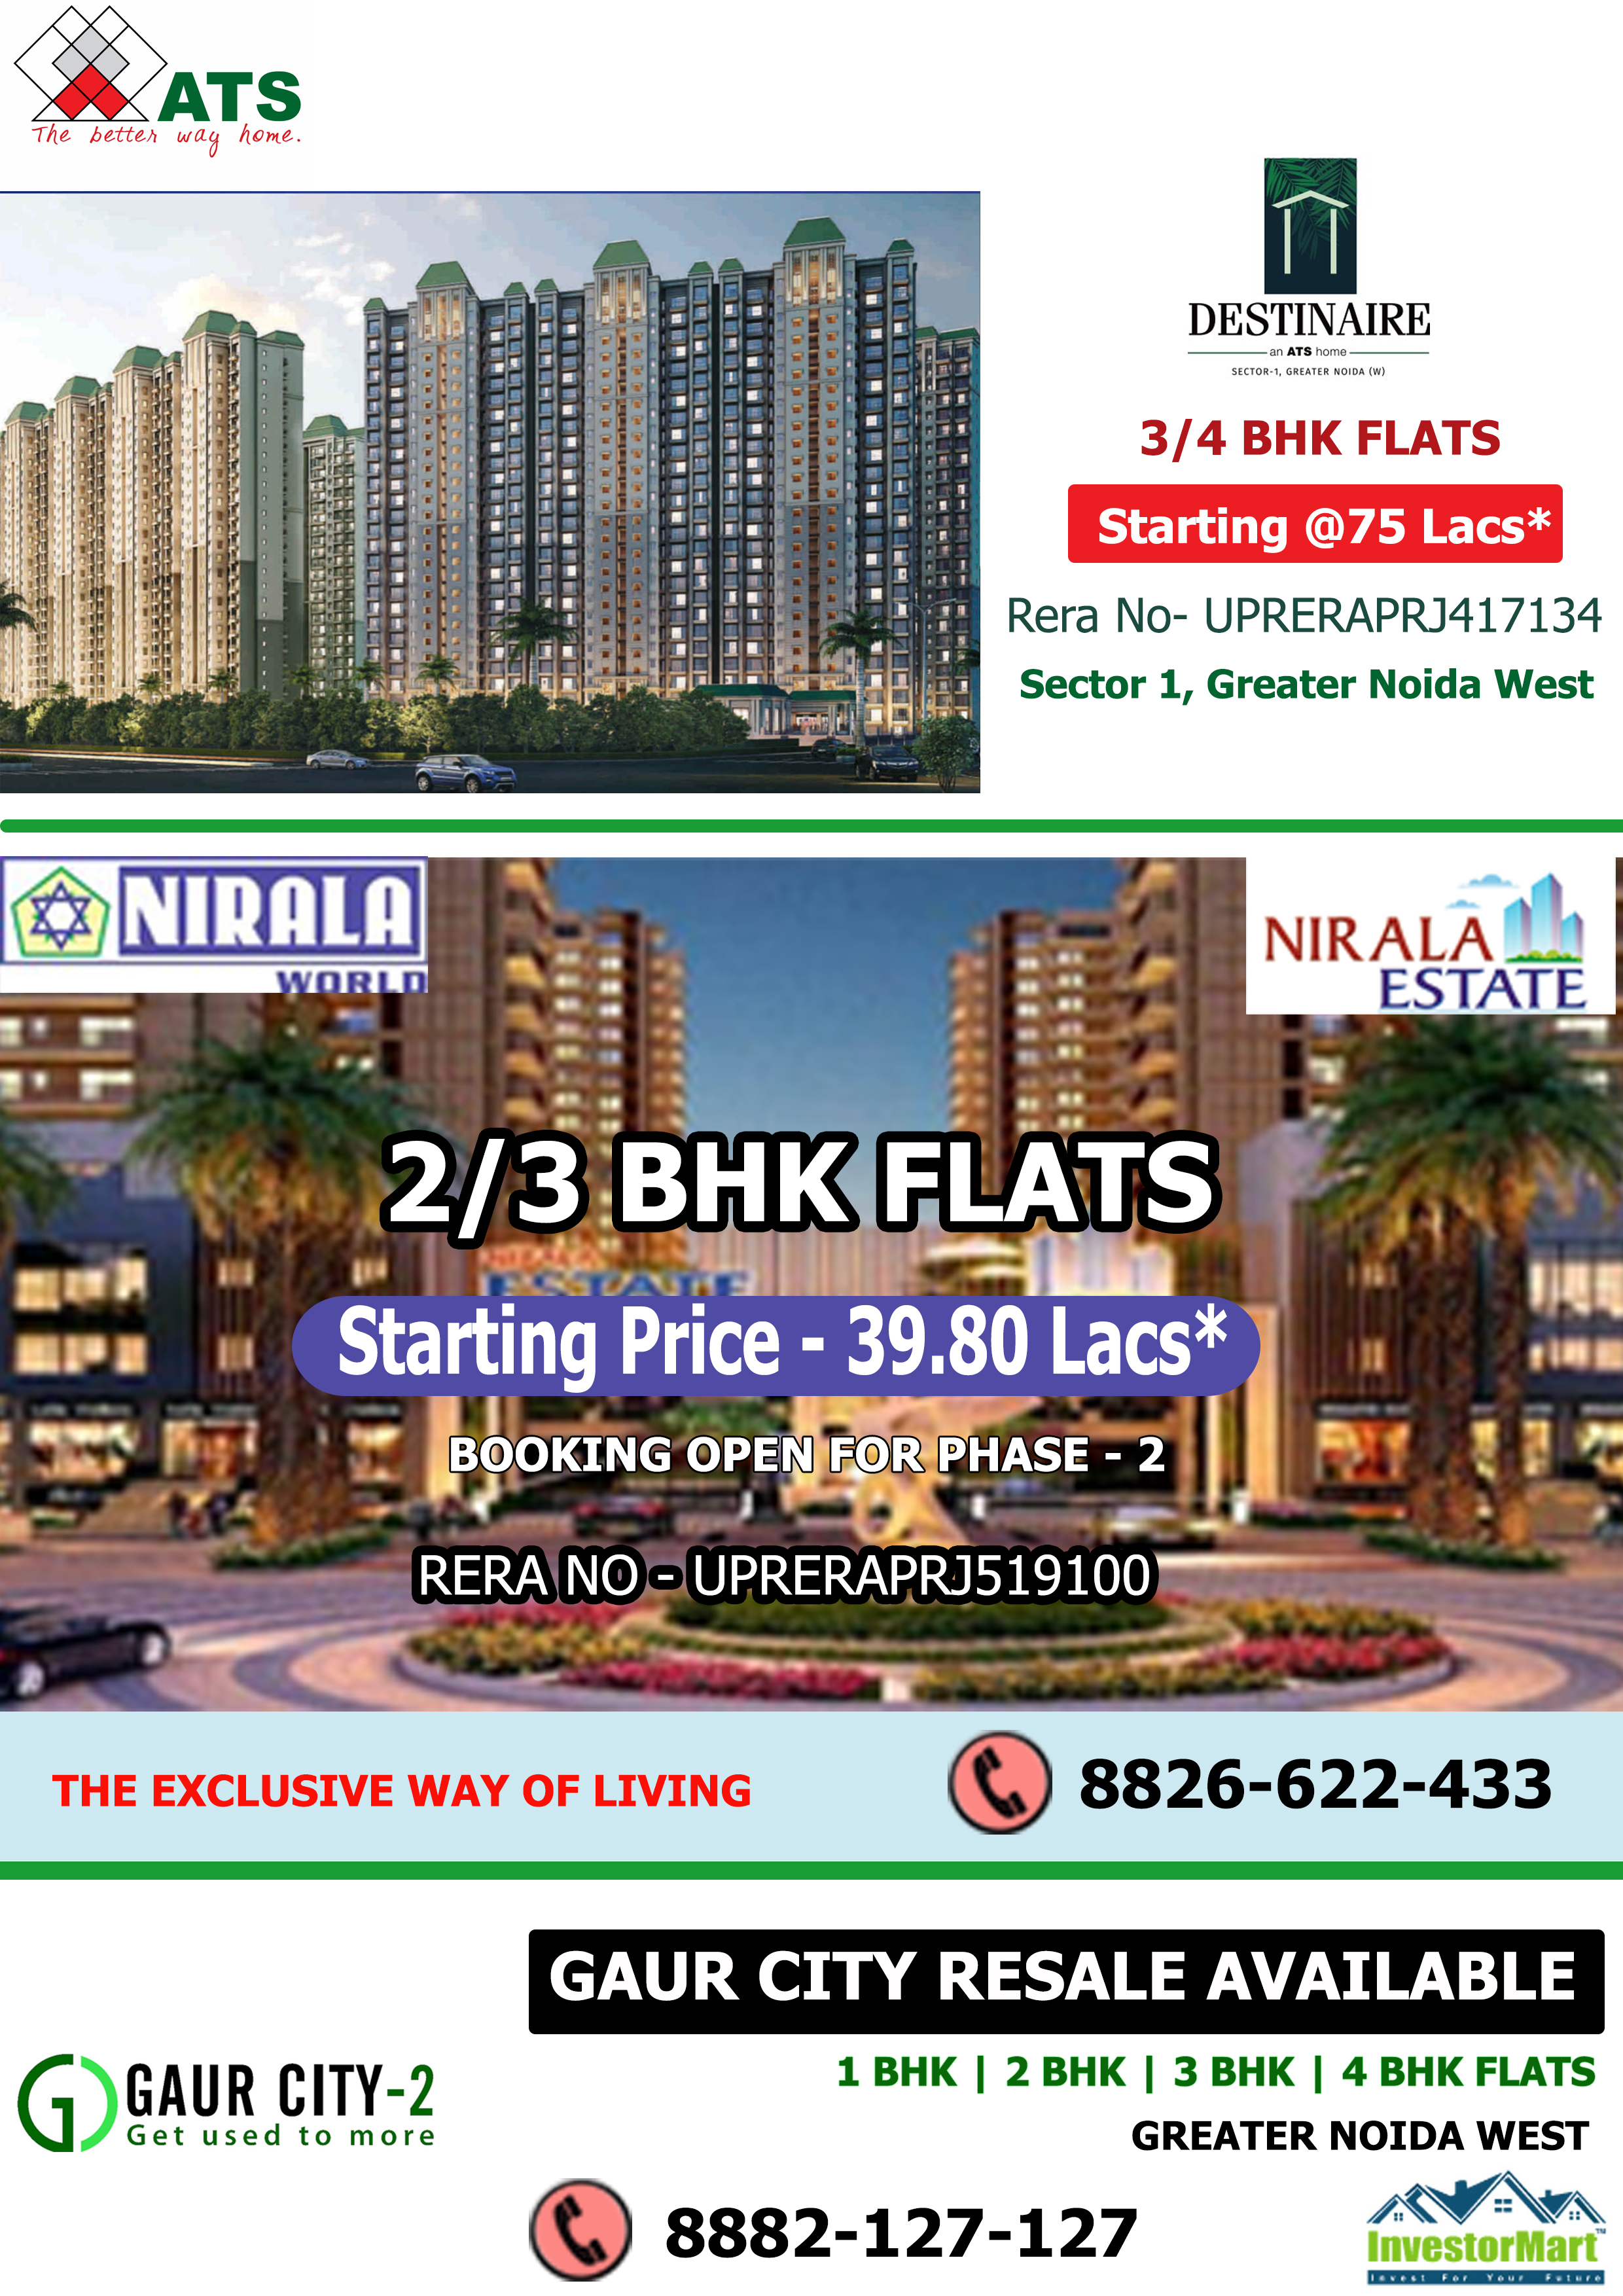 Property in Greater Noida West